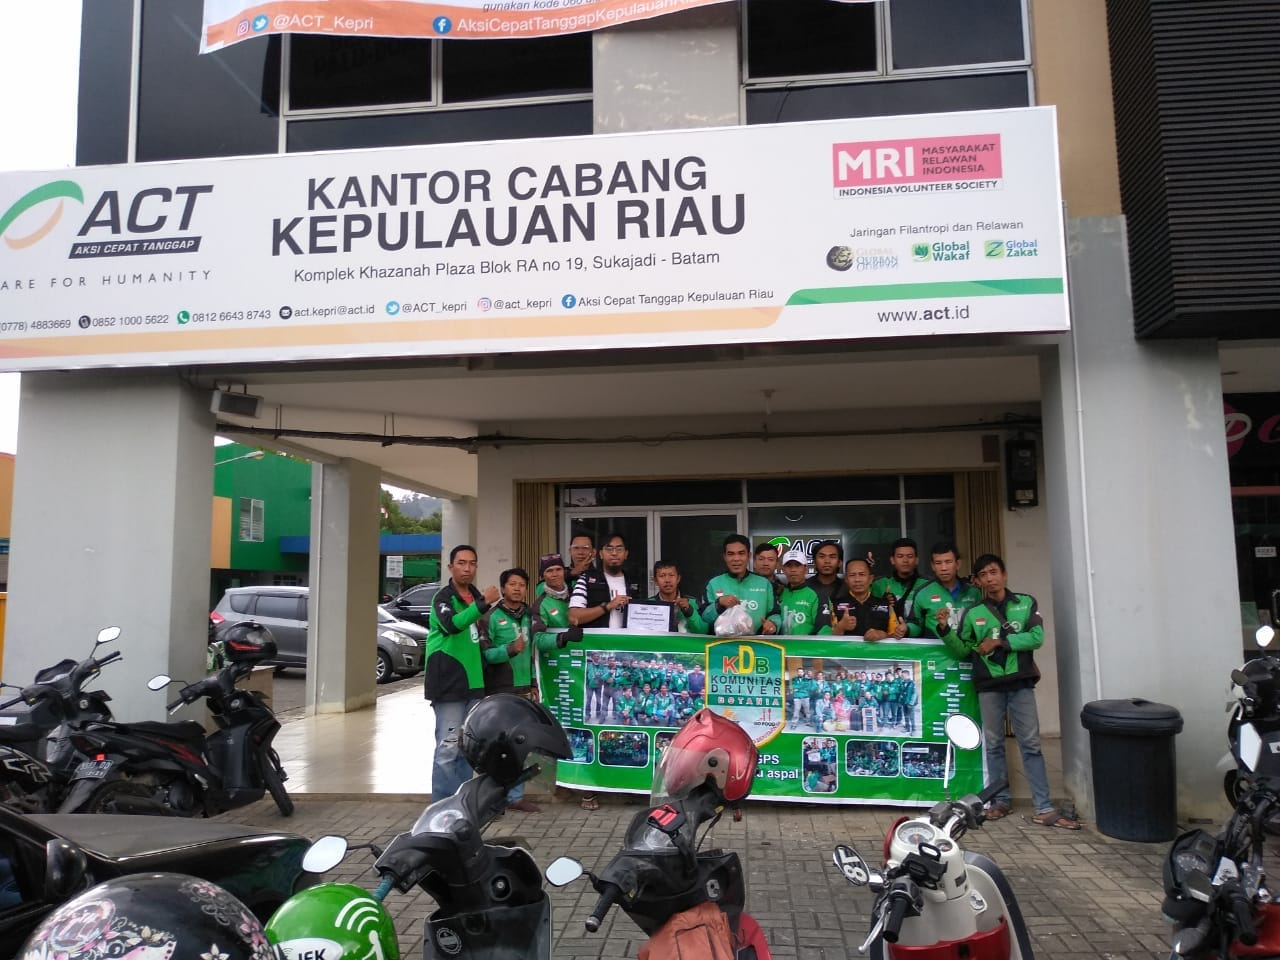 Batamese Online Motorcycle Taxis Raise Funds for Central Sulawesi's image